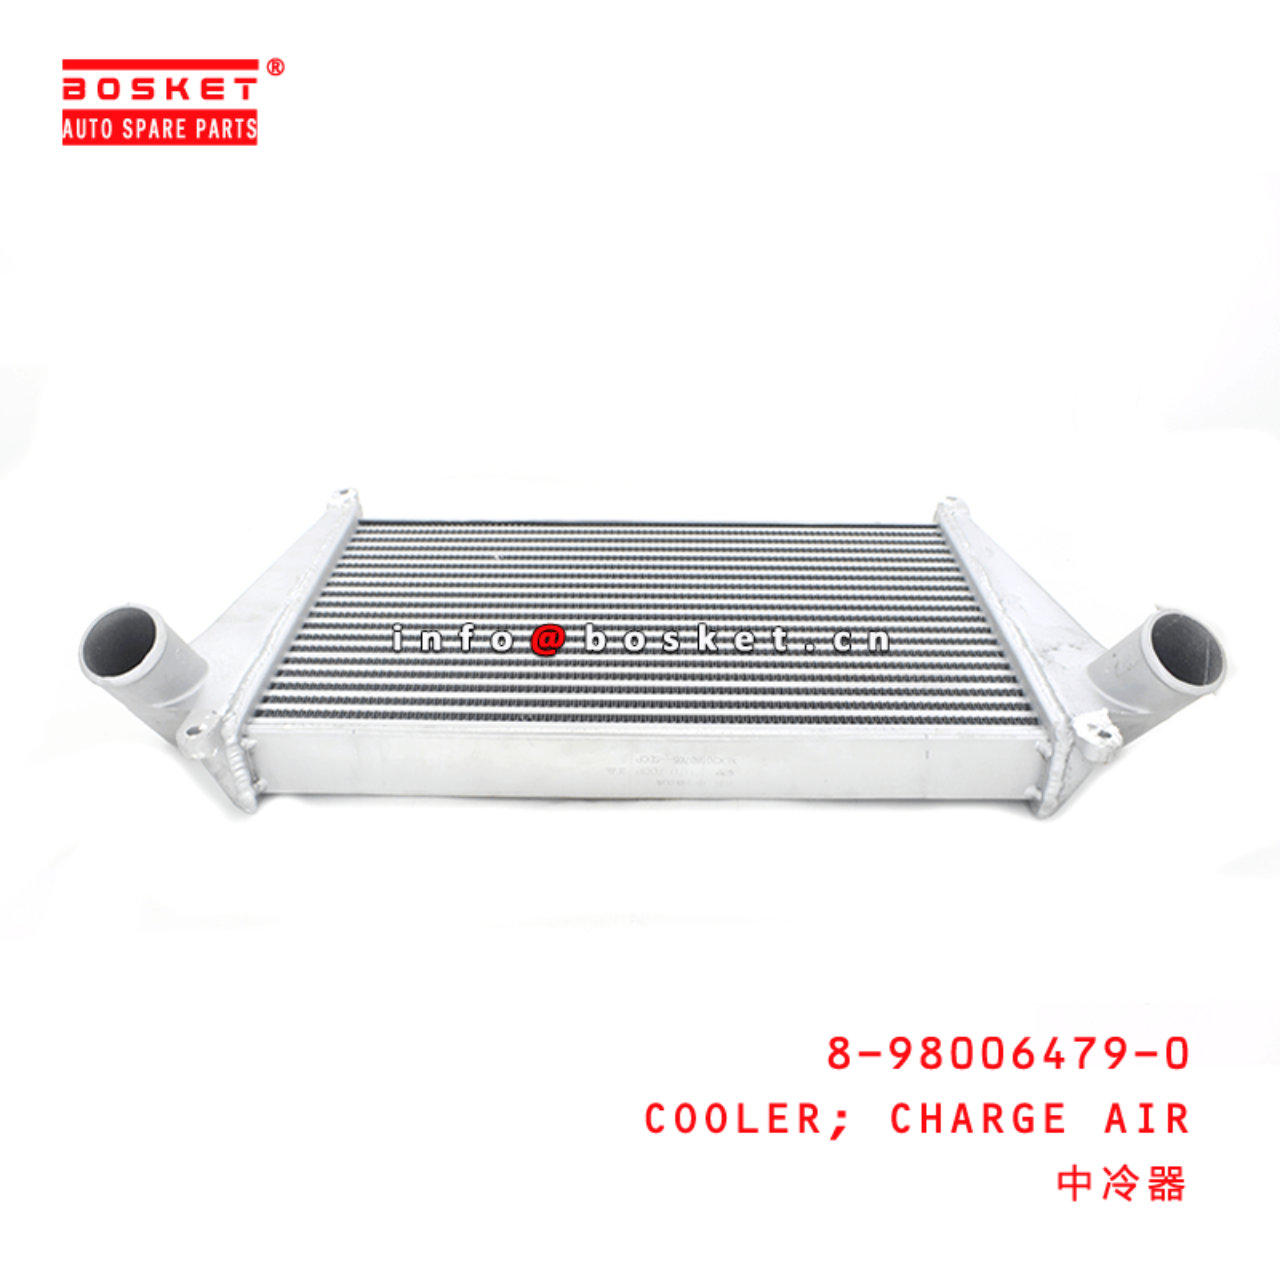 8-98006479-0 Charge Air Cooler 8980064790 Suitable for ISUZU 700P NPR75 NQR75